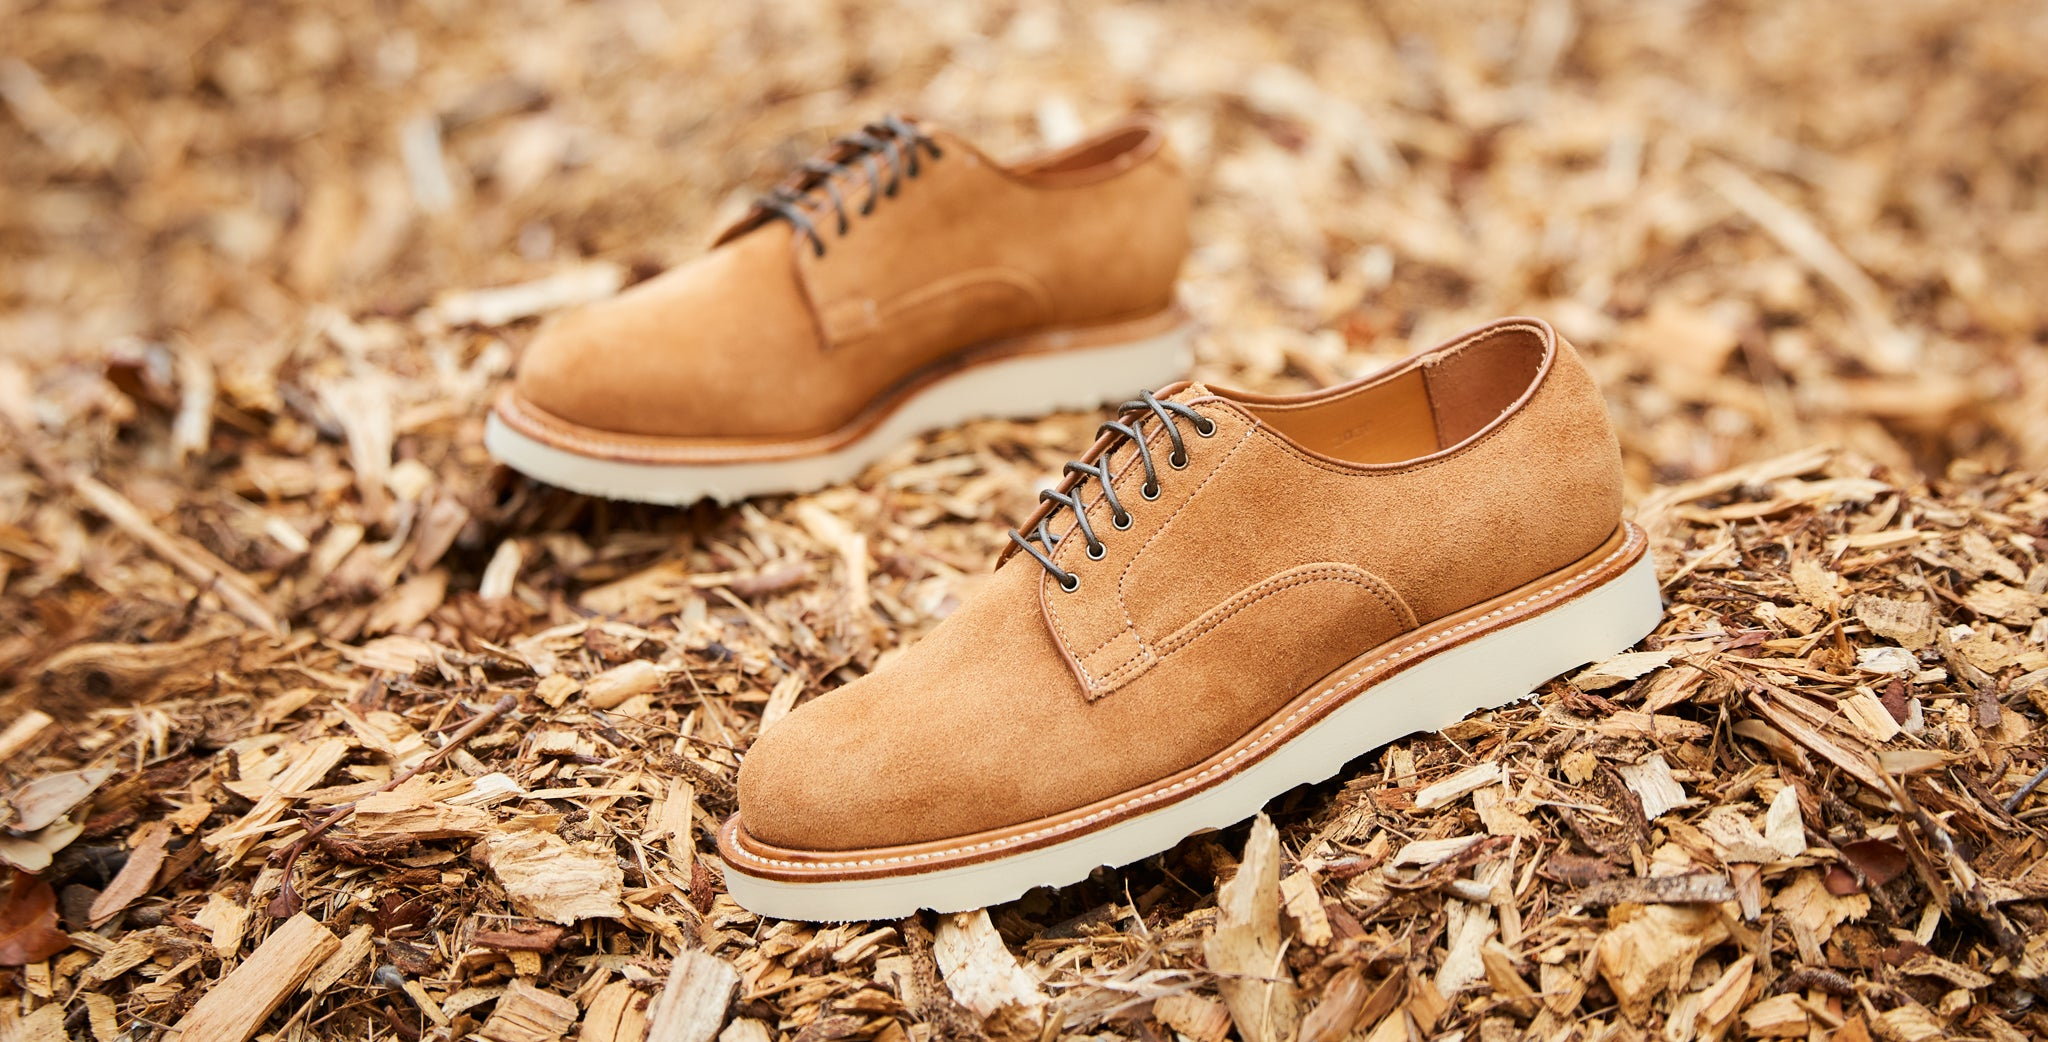 Division Road Viberg x DR Anise Kudu Reverse Derby Shoe